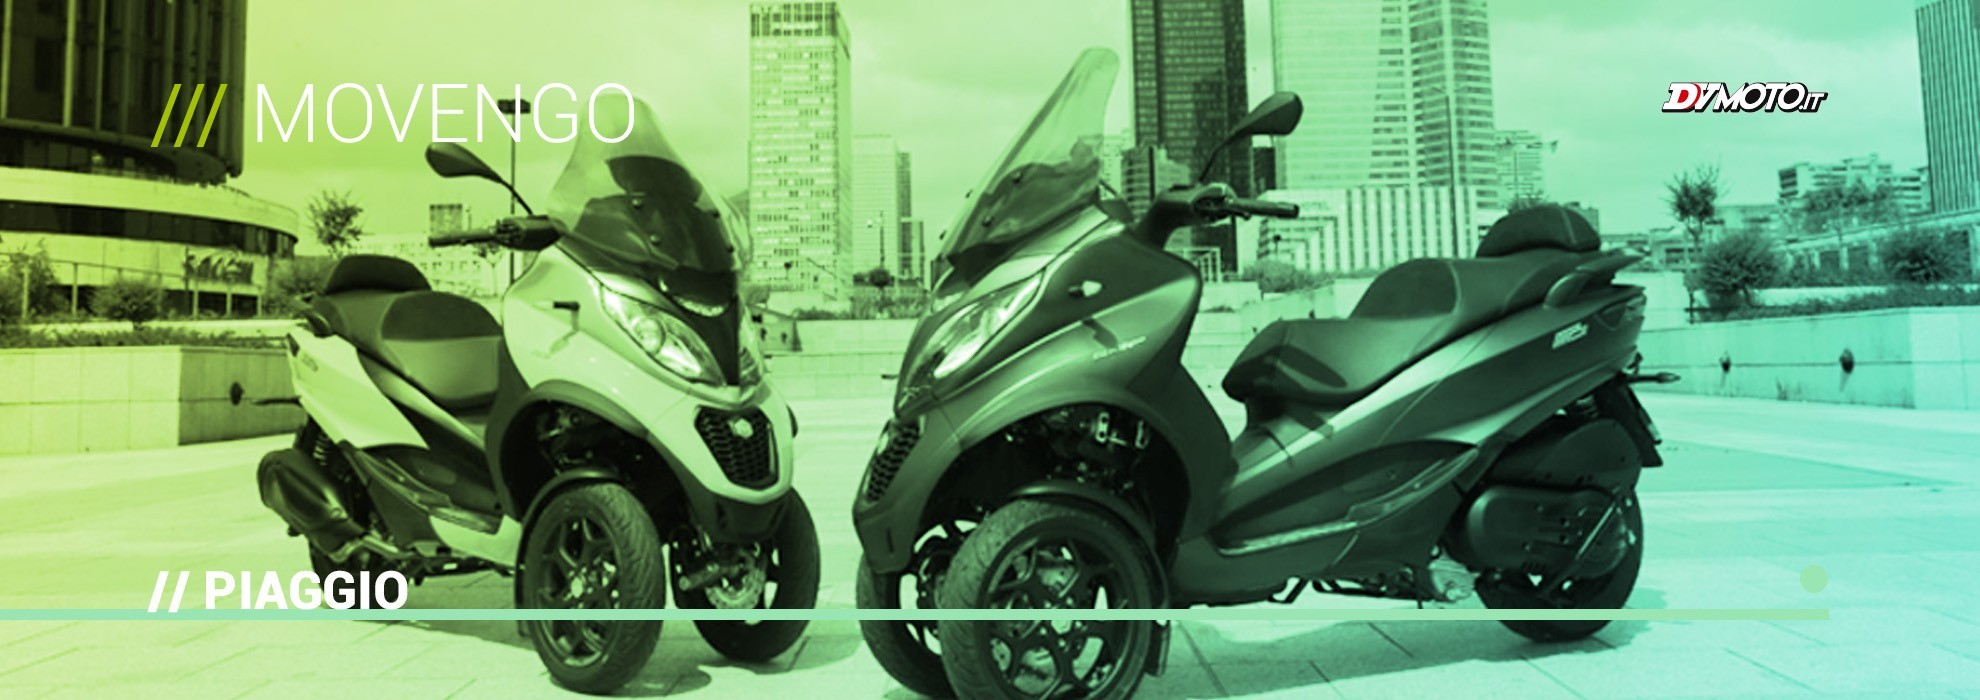 Slider-Homepage_MOVENGO PIAGGIO